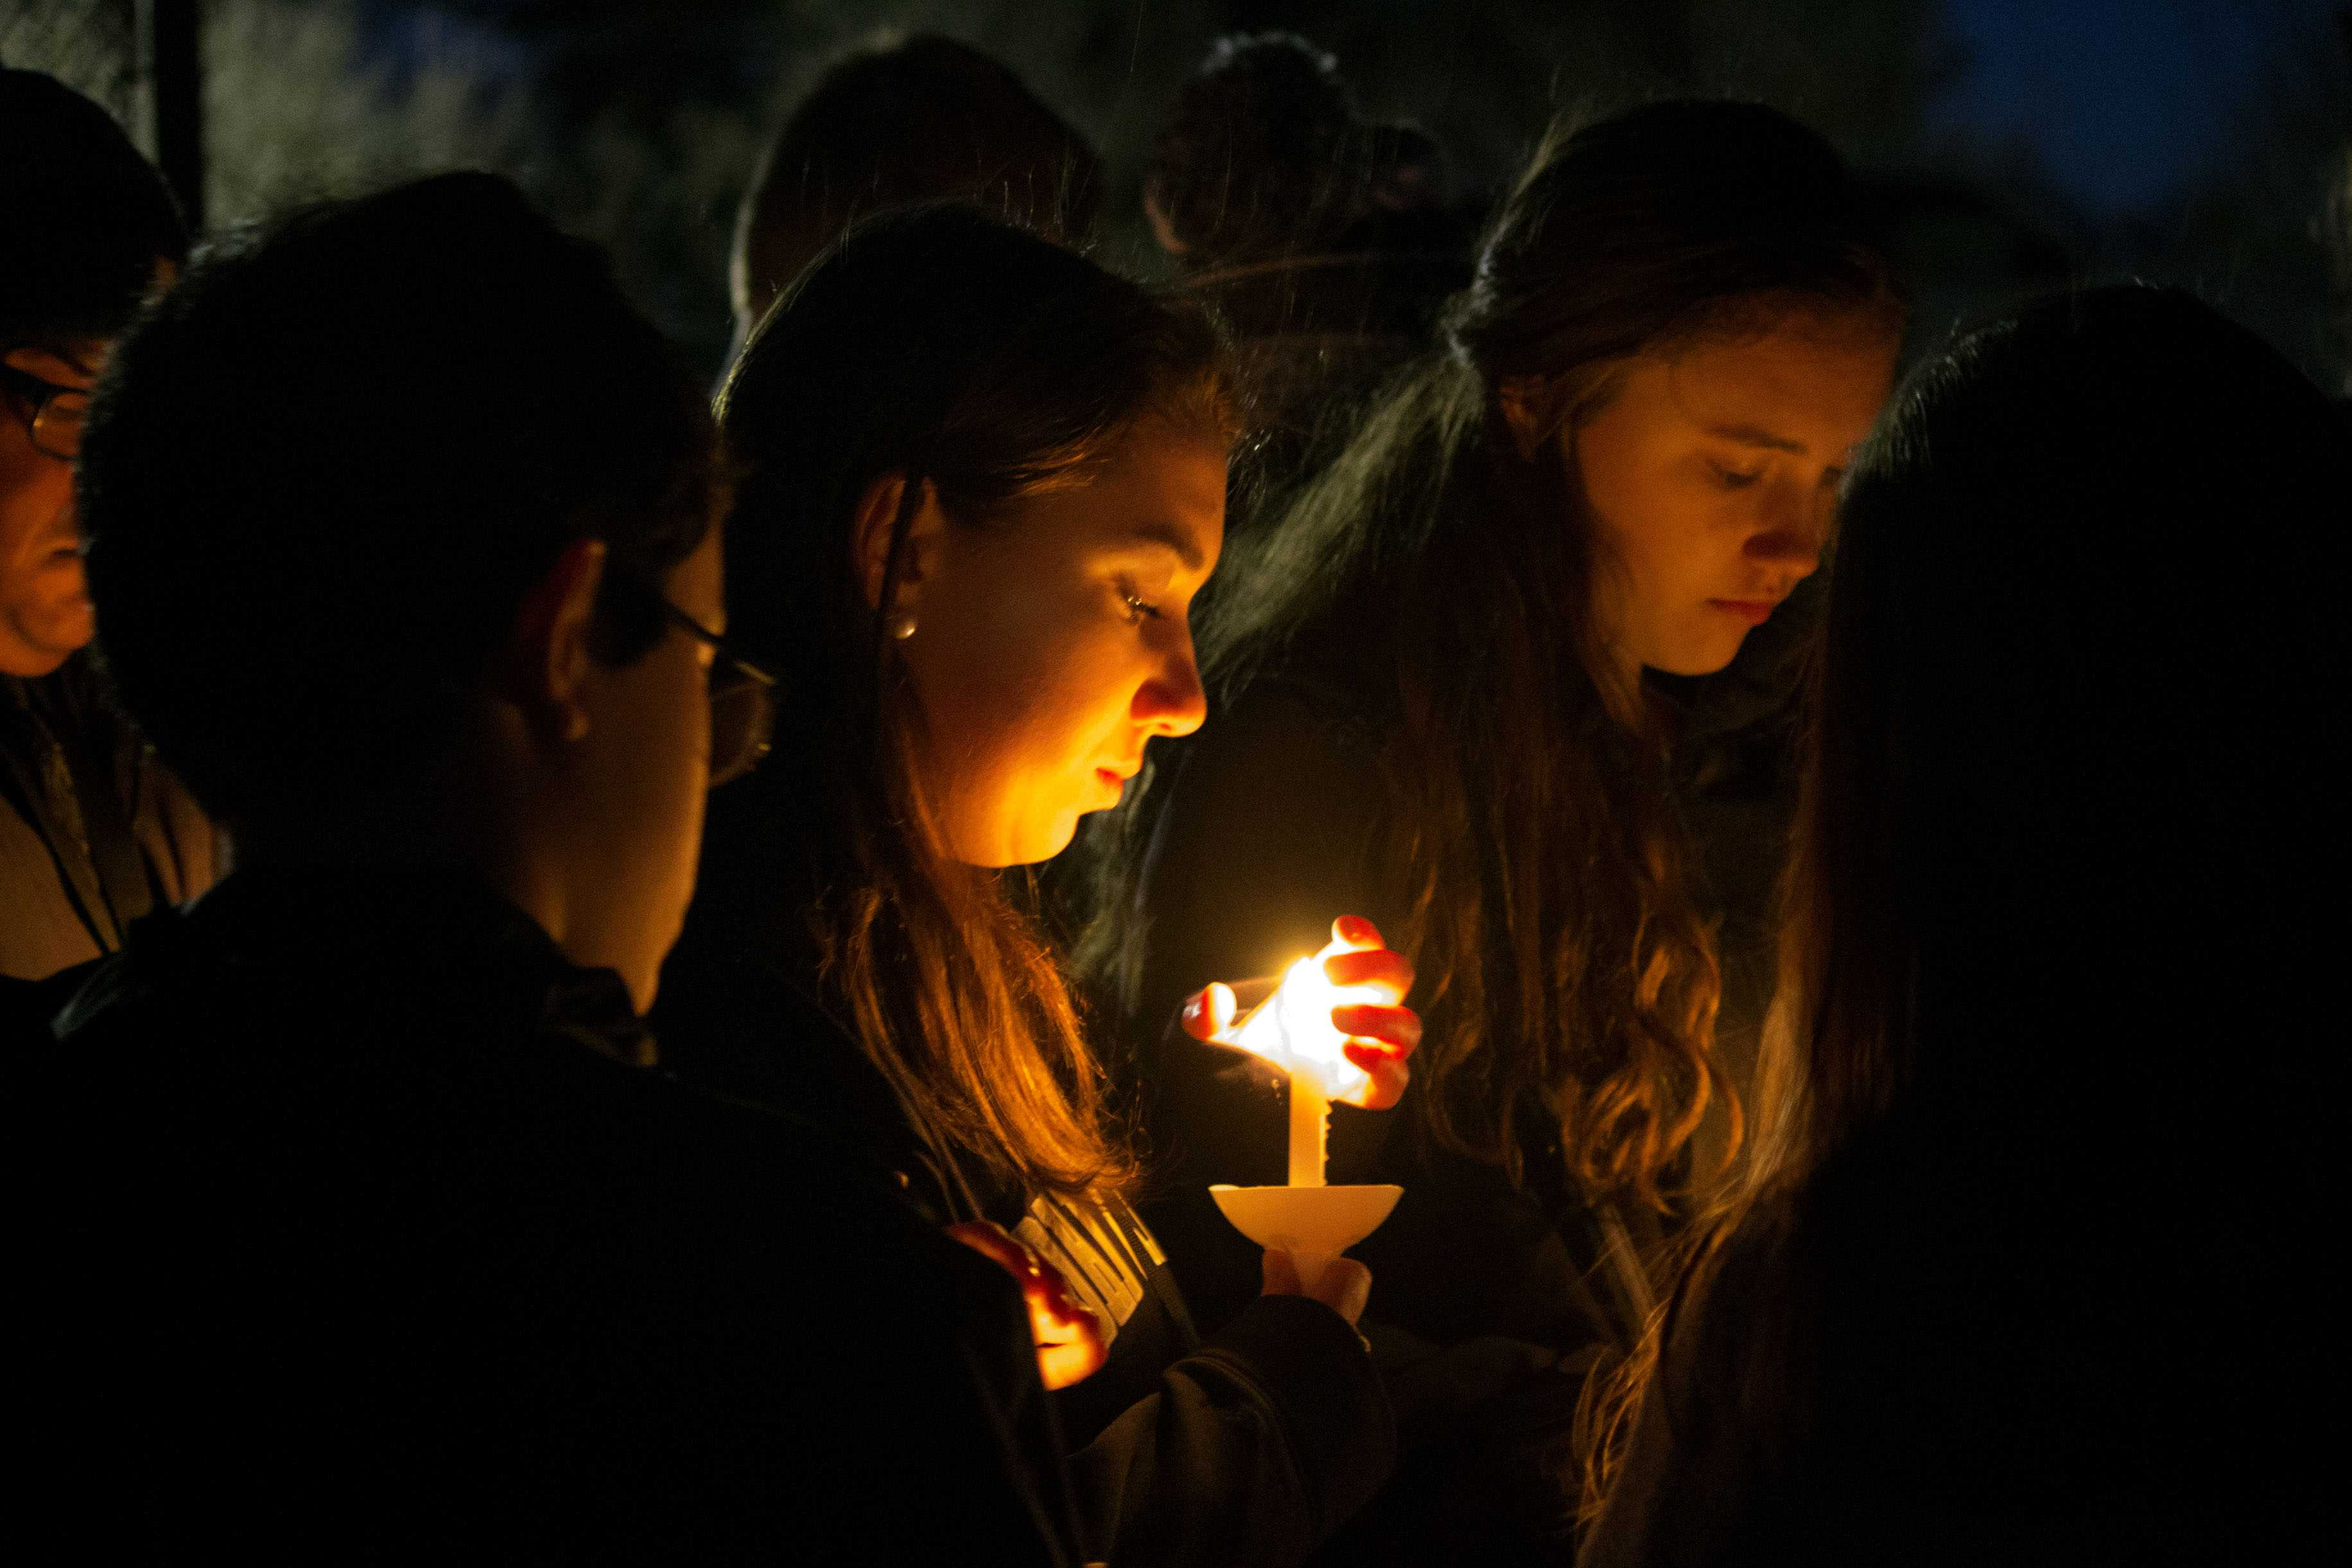 A student holds a candle in memory of sophomore Josh Hamer at the candlight vigil on Thusday, March 2. In addition to the vigil, students united together on Monday March 6, the community held a prayer service to honor and celebrate Josh's life.